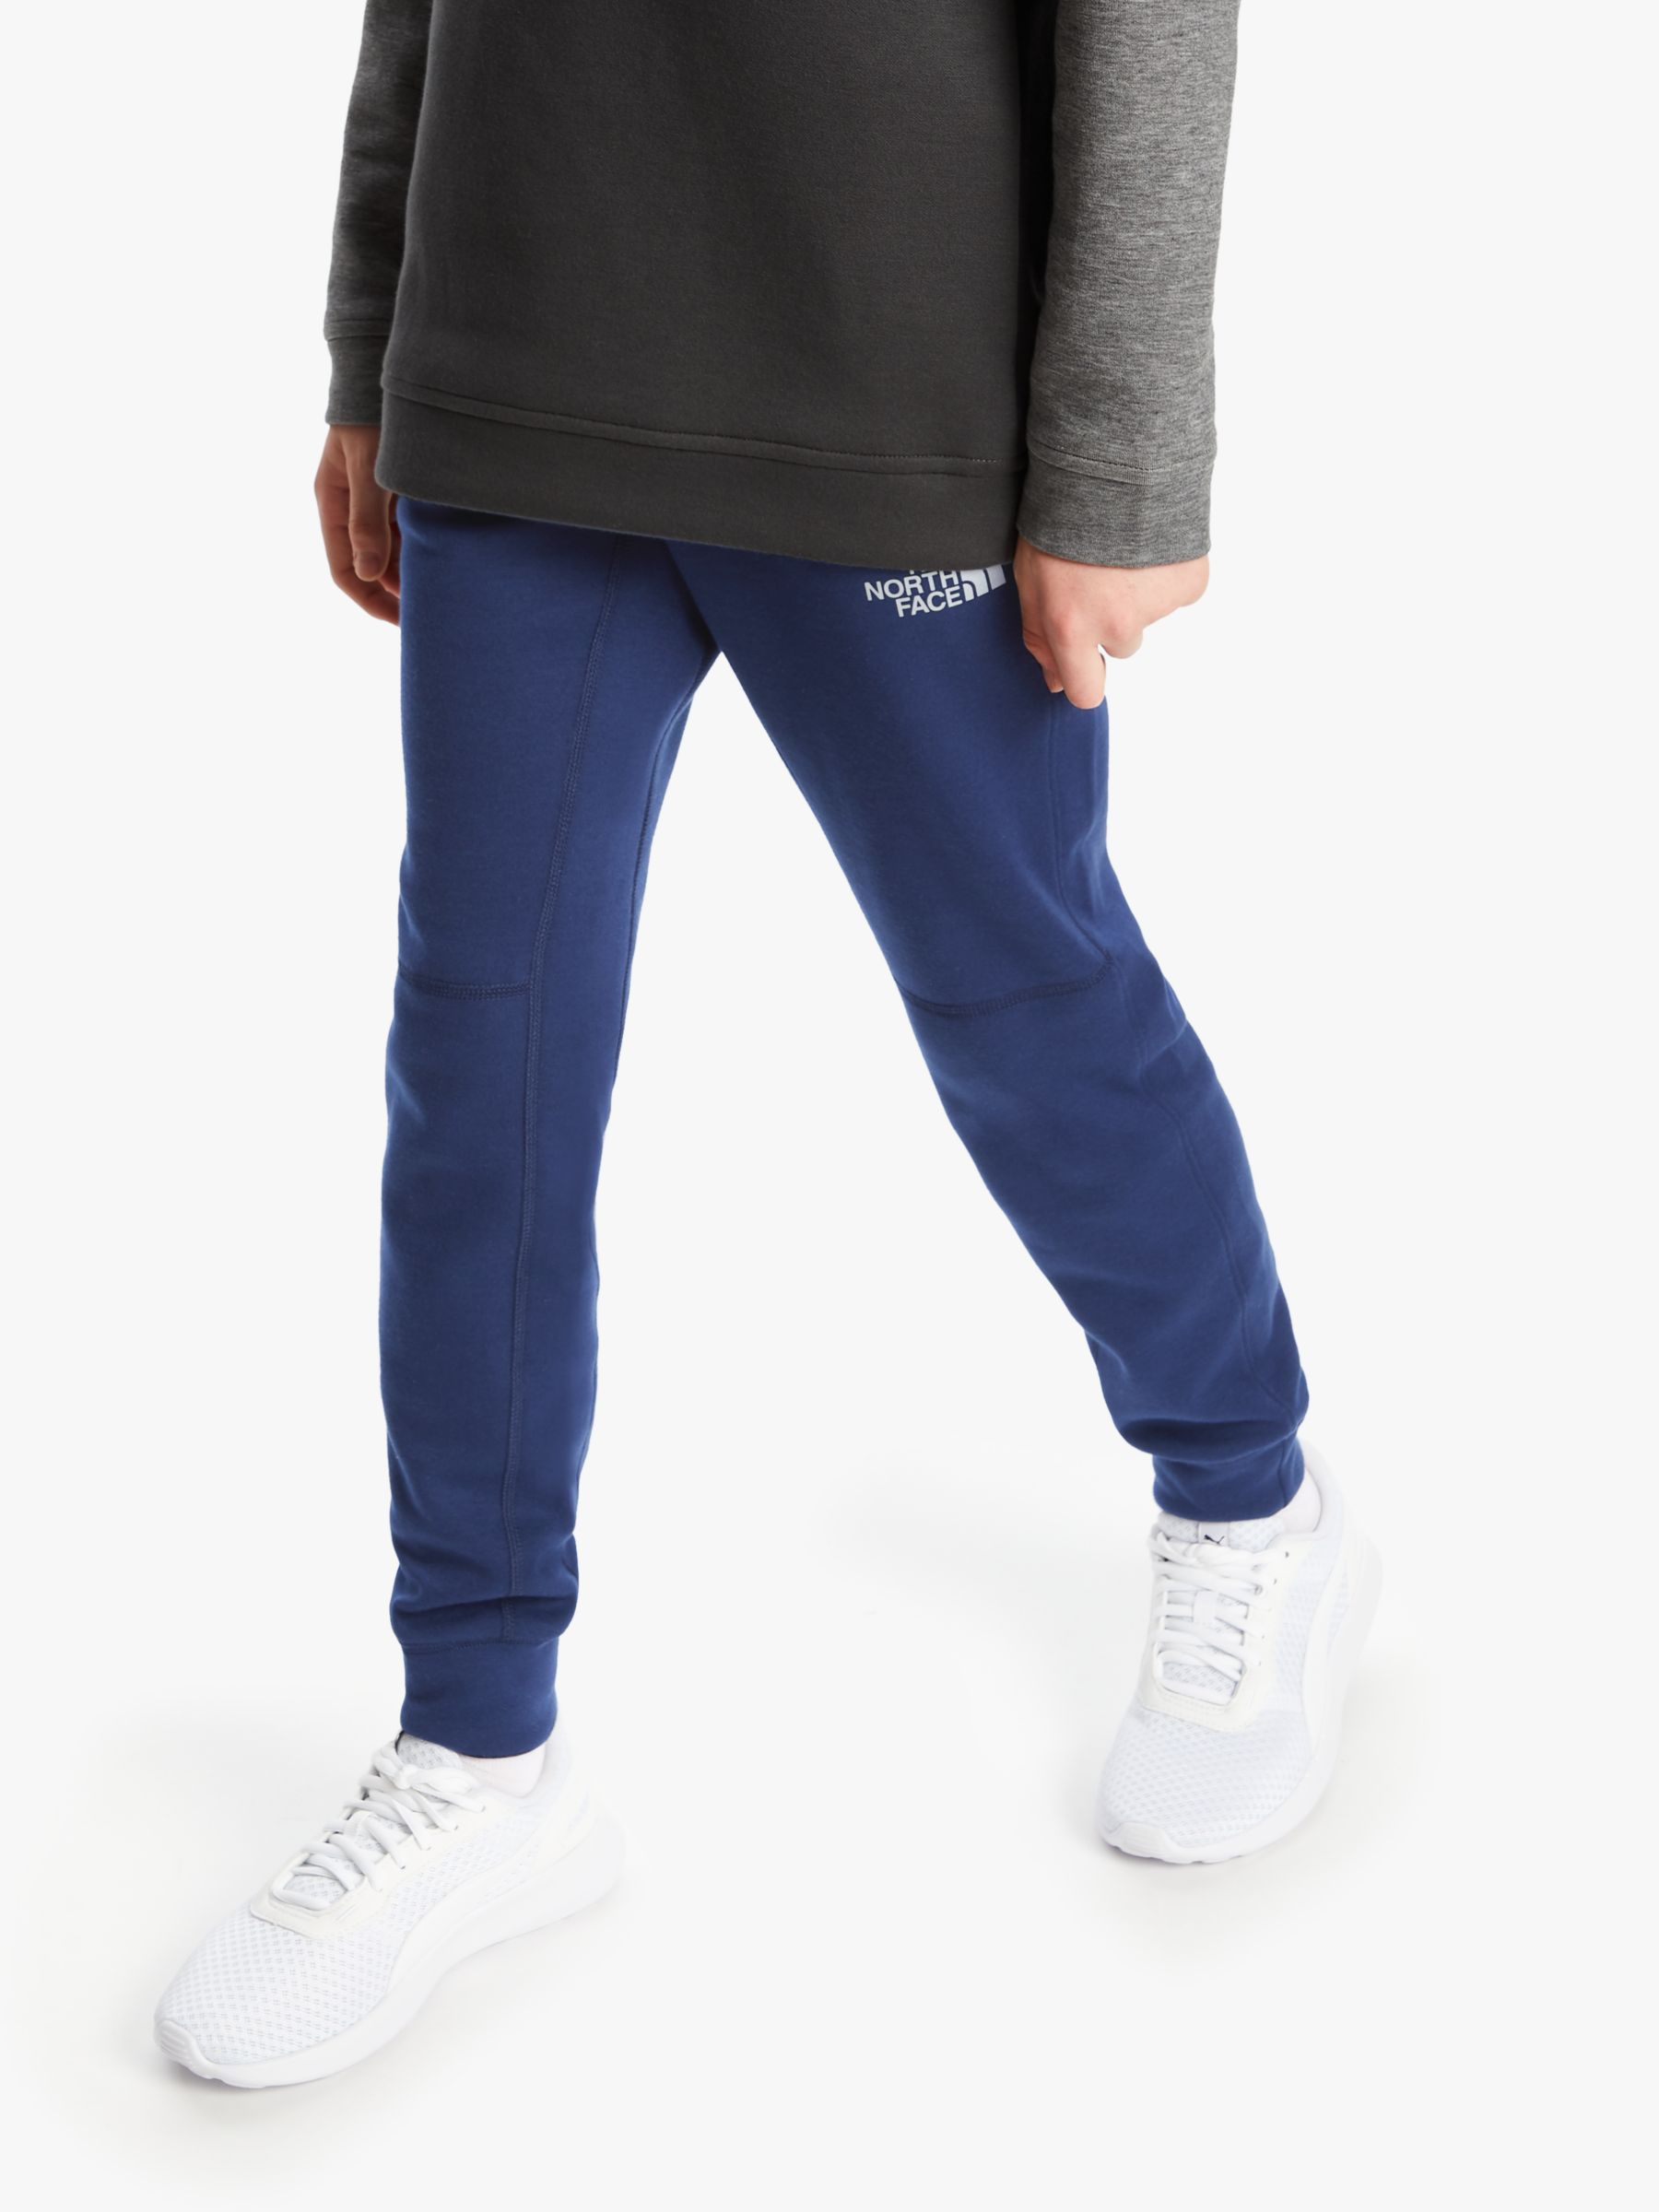 The North Face The North Face Boys' Cuffed Joggers, Navy